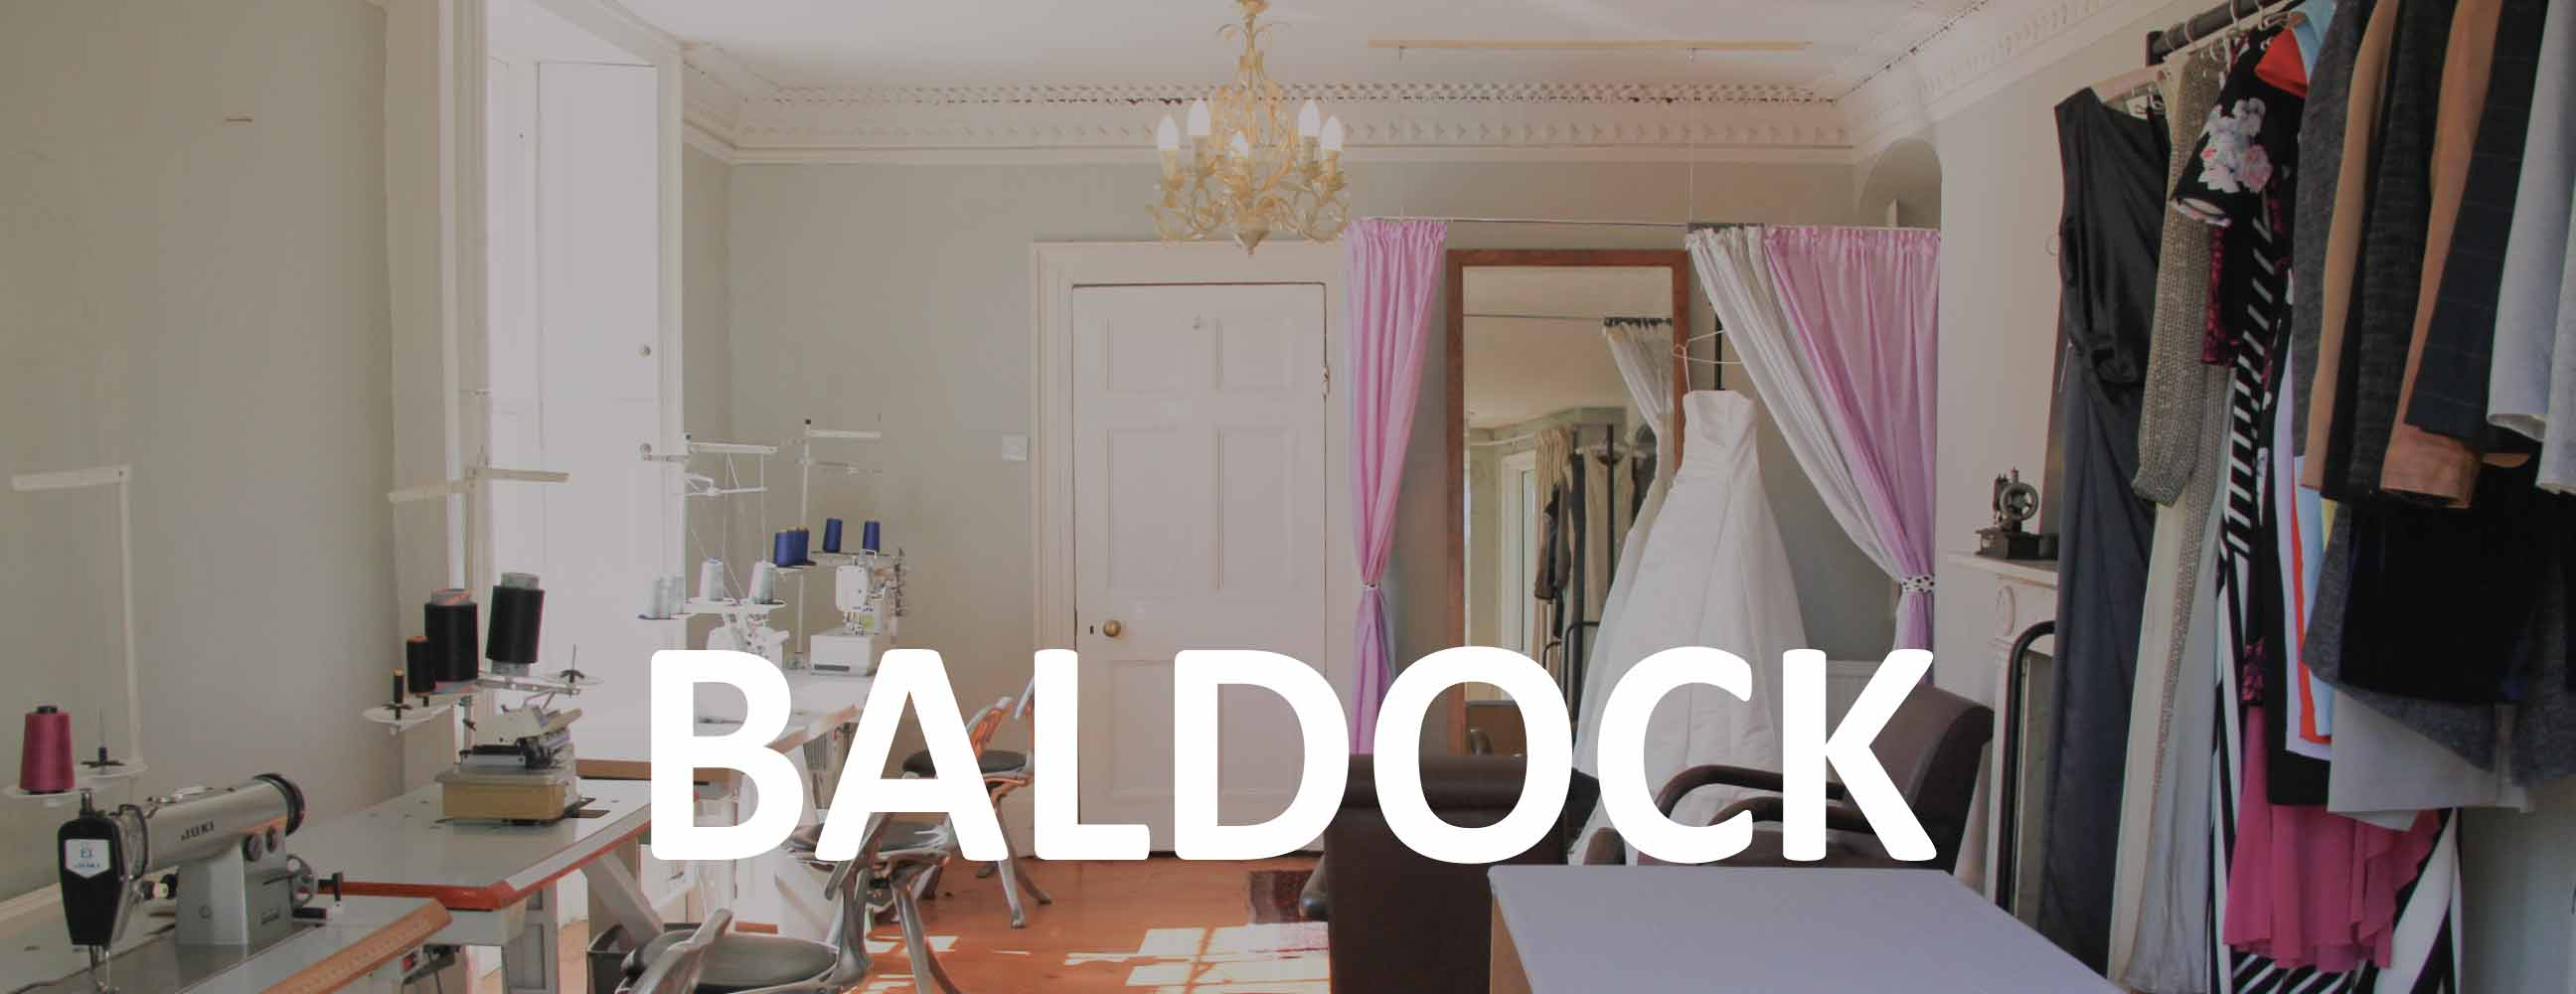 Clothing-Alterations-Baldock